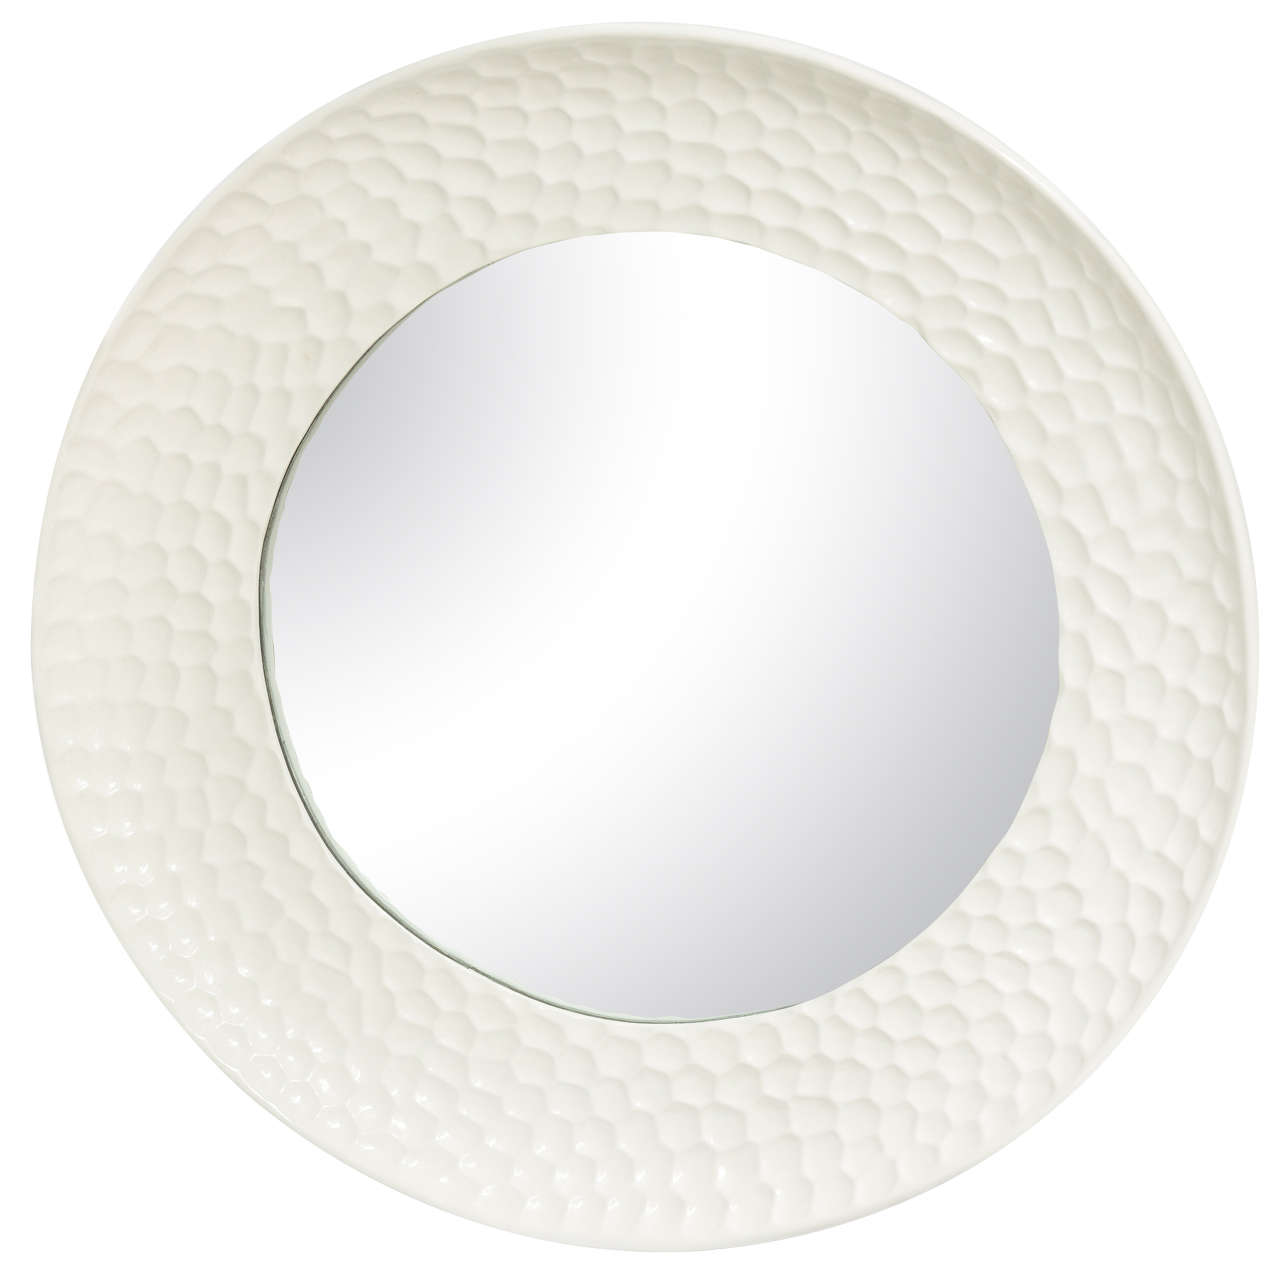 Round high gloss white lacquered mirror for sale at 1stdibs for White round wall mirror